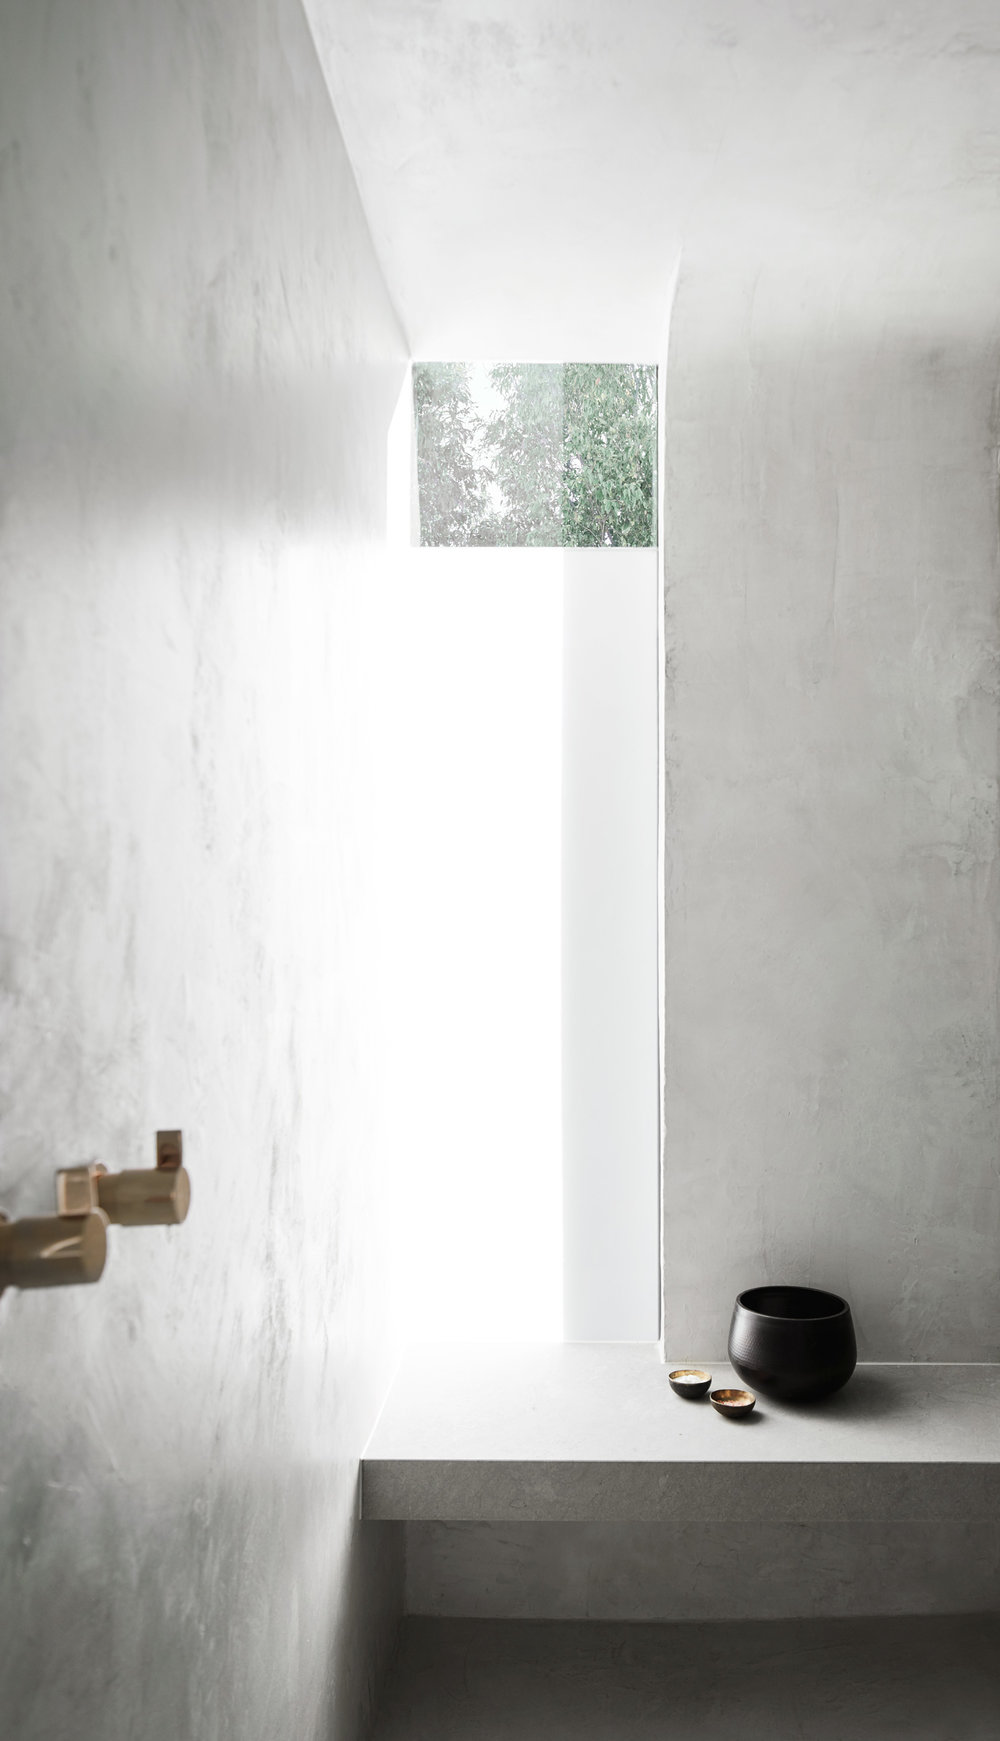 Willow-Urban-Retreat-in-Melbourne-by-Meme-Yellowtrace-05.jpg